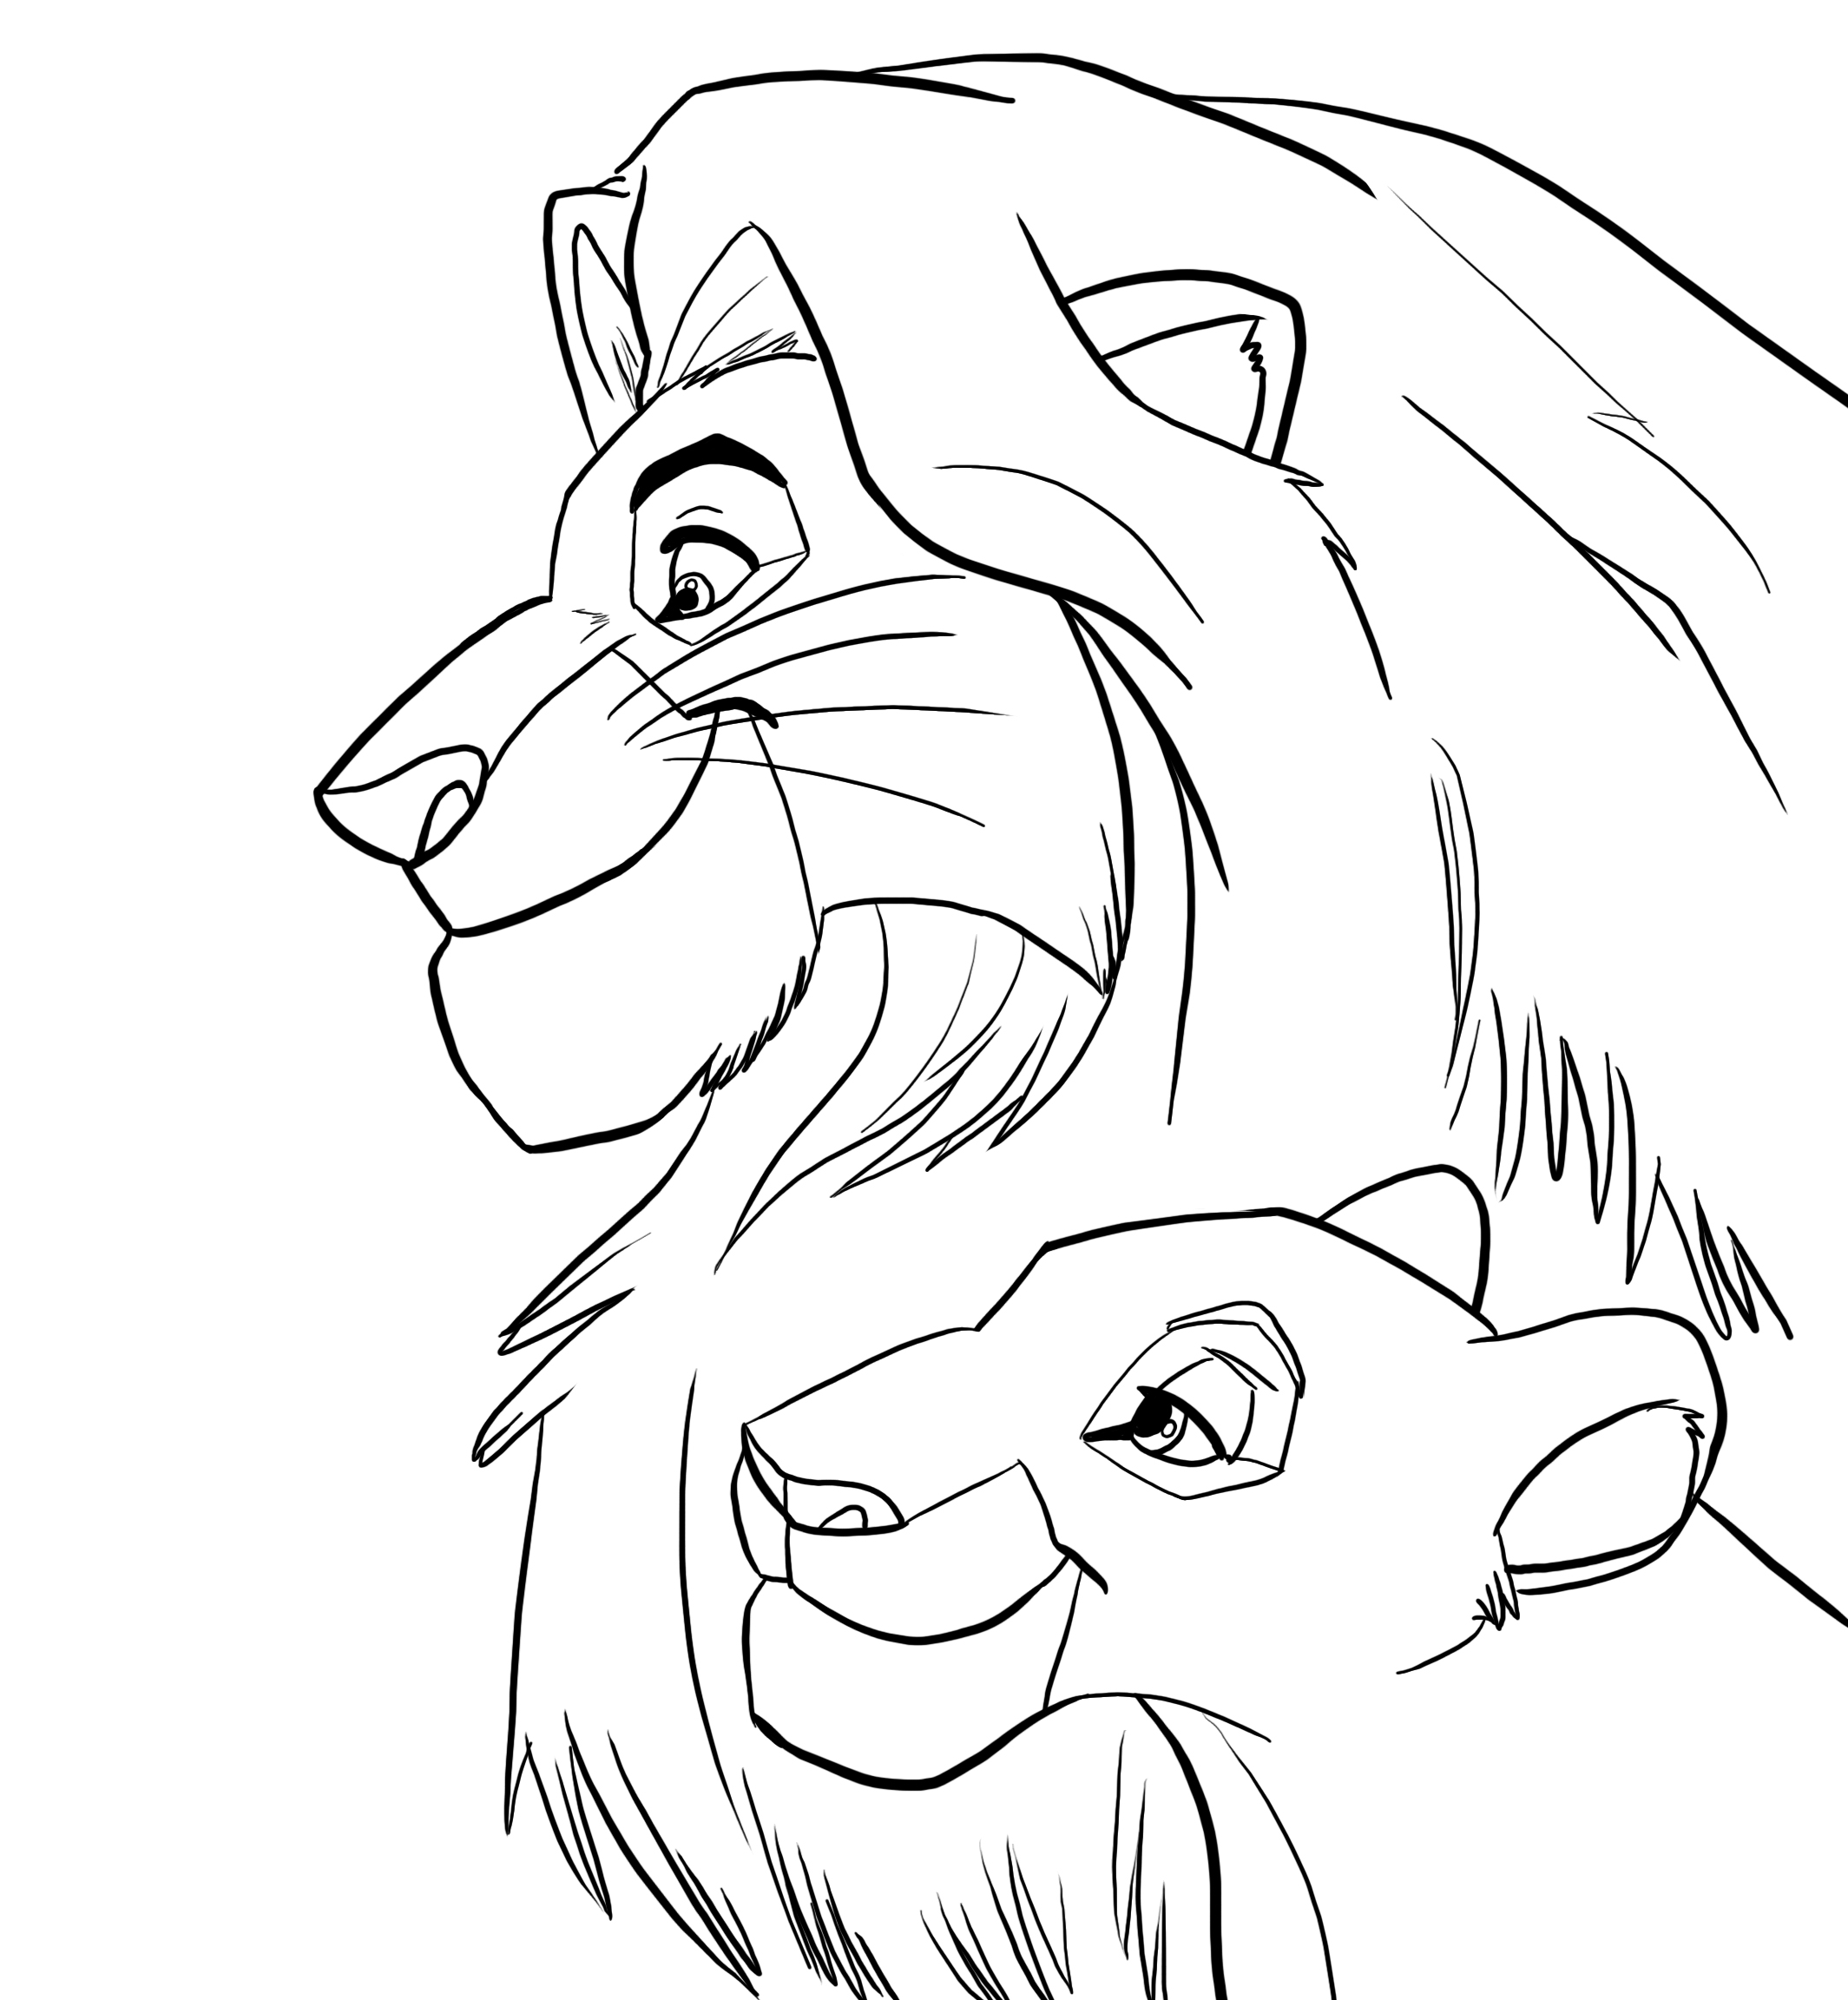 lion king mufasa coloring pages lion king mufasa coloring pages at getdrawings free download king pages mufasa lion coloring